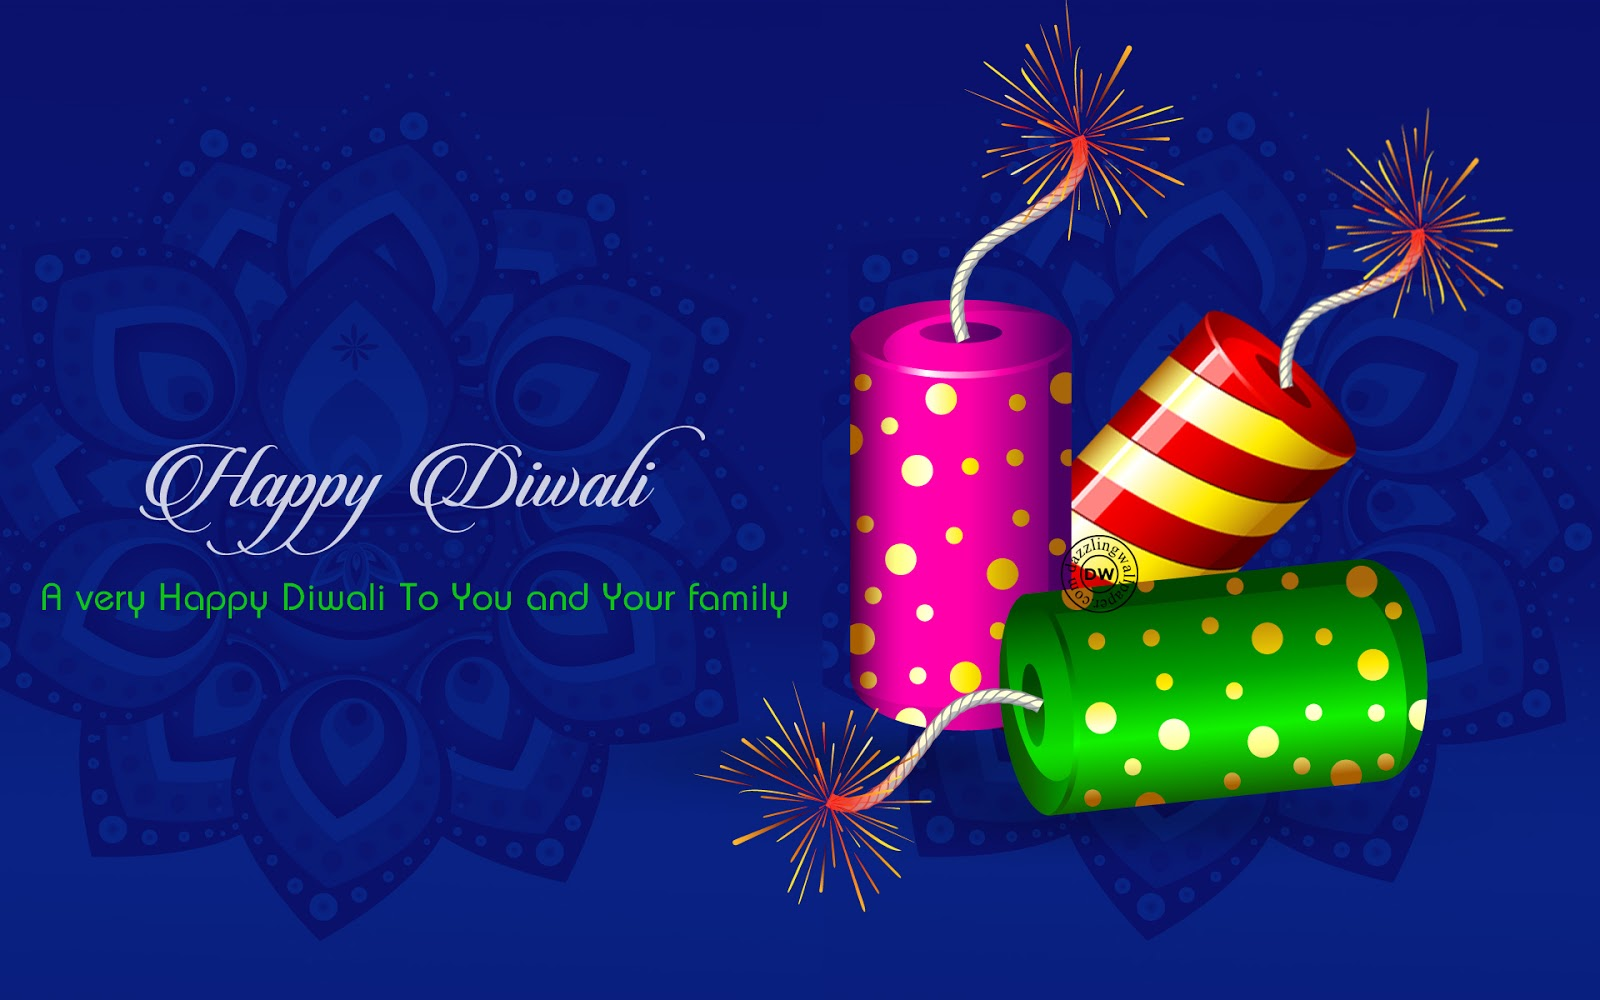 Live Diwali Wallpaper